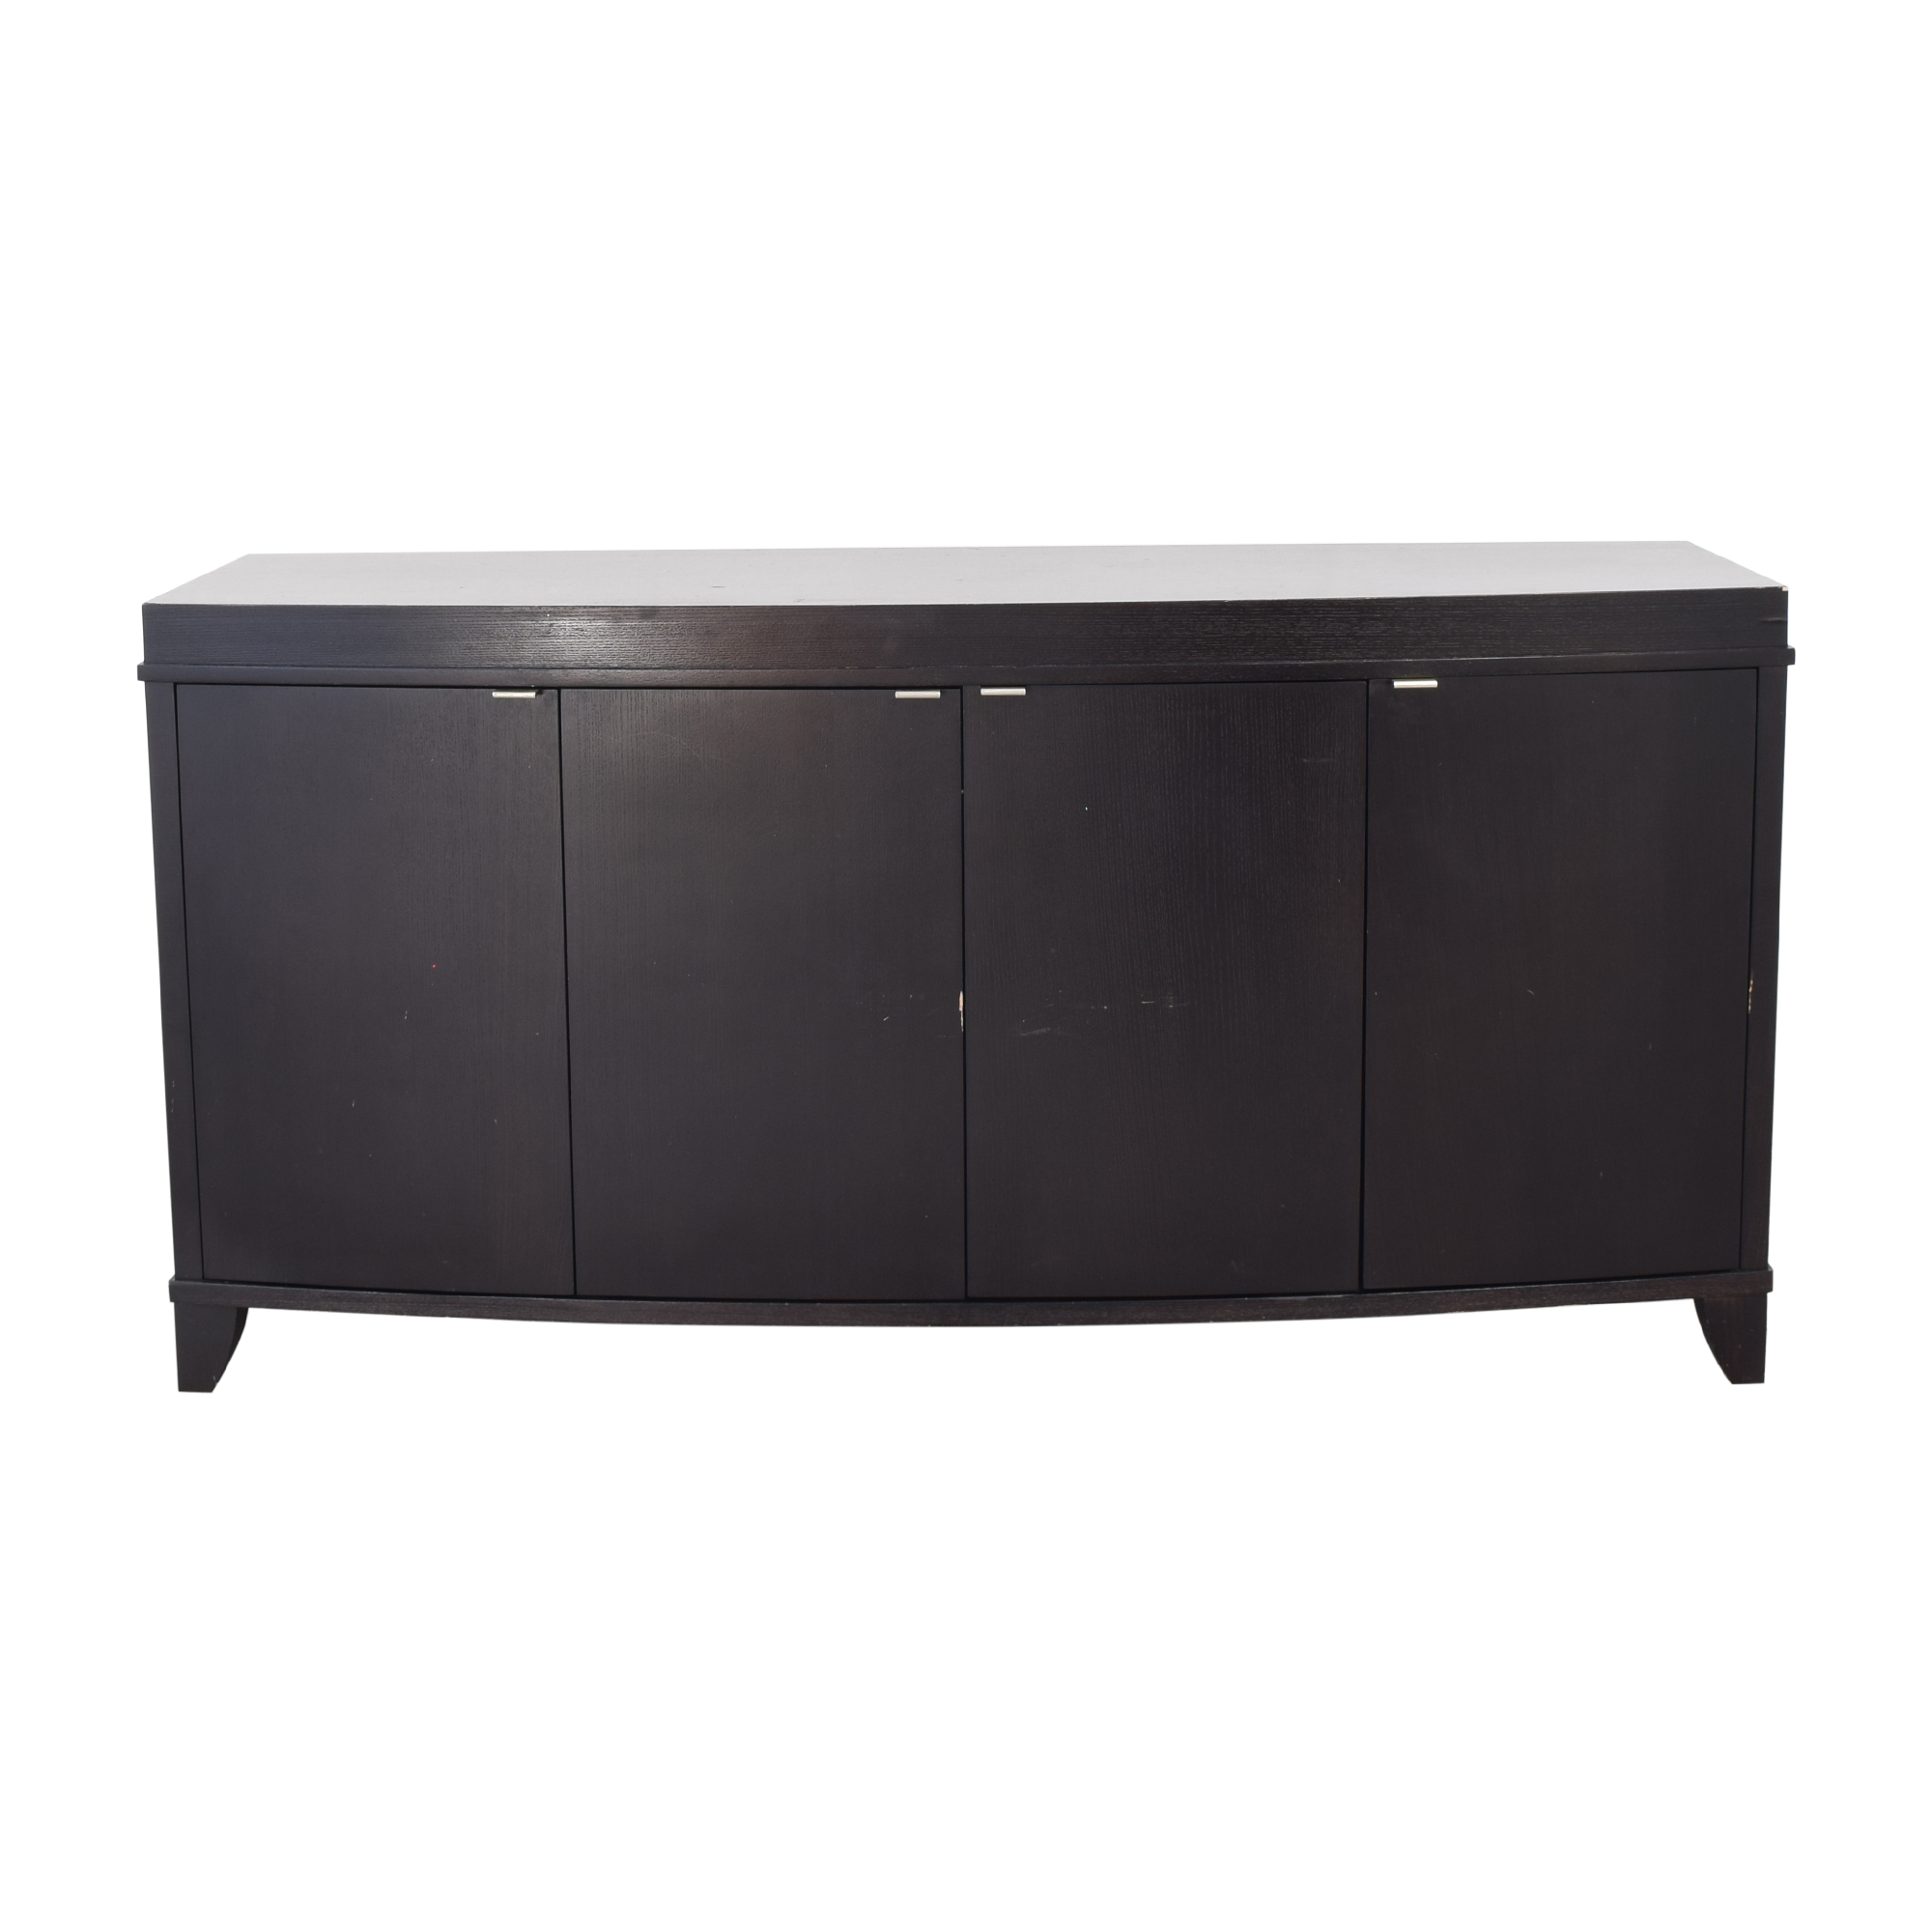 Crate & Barrel Crate & Barrel Sideboard nj